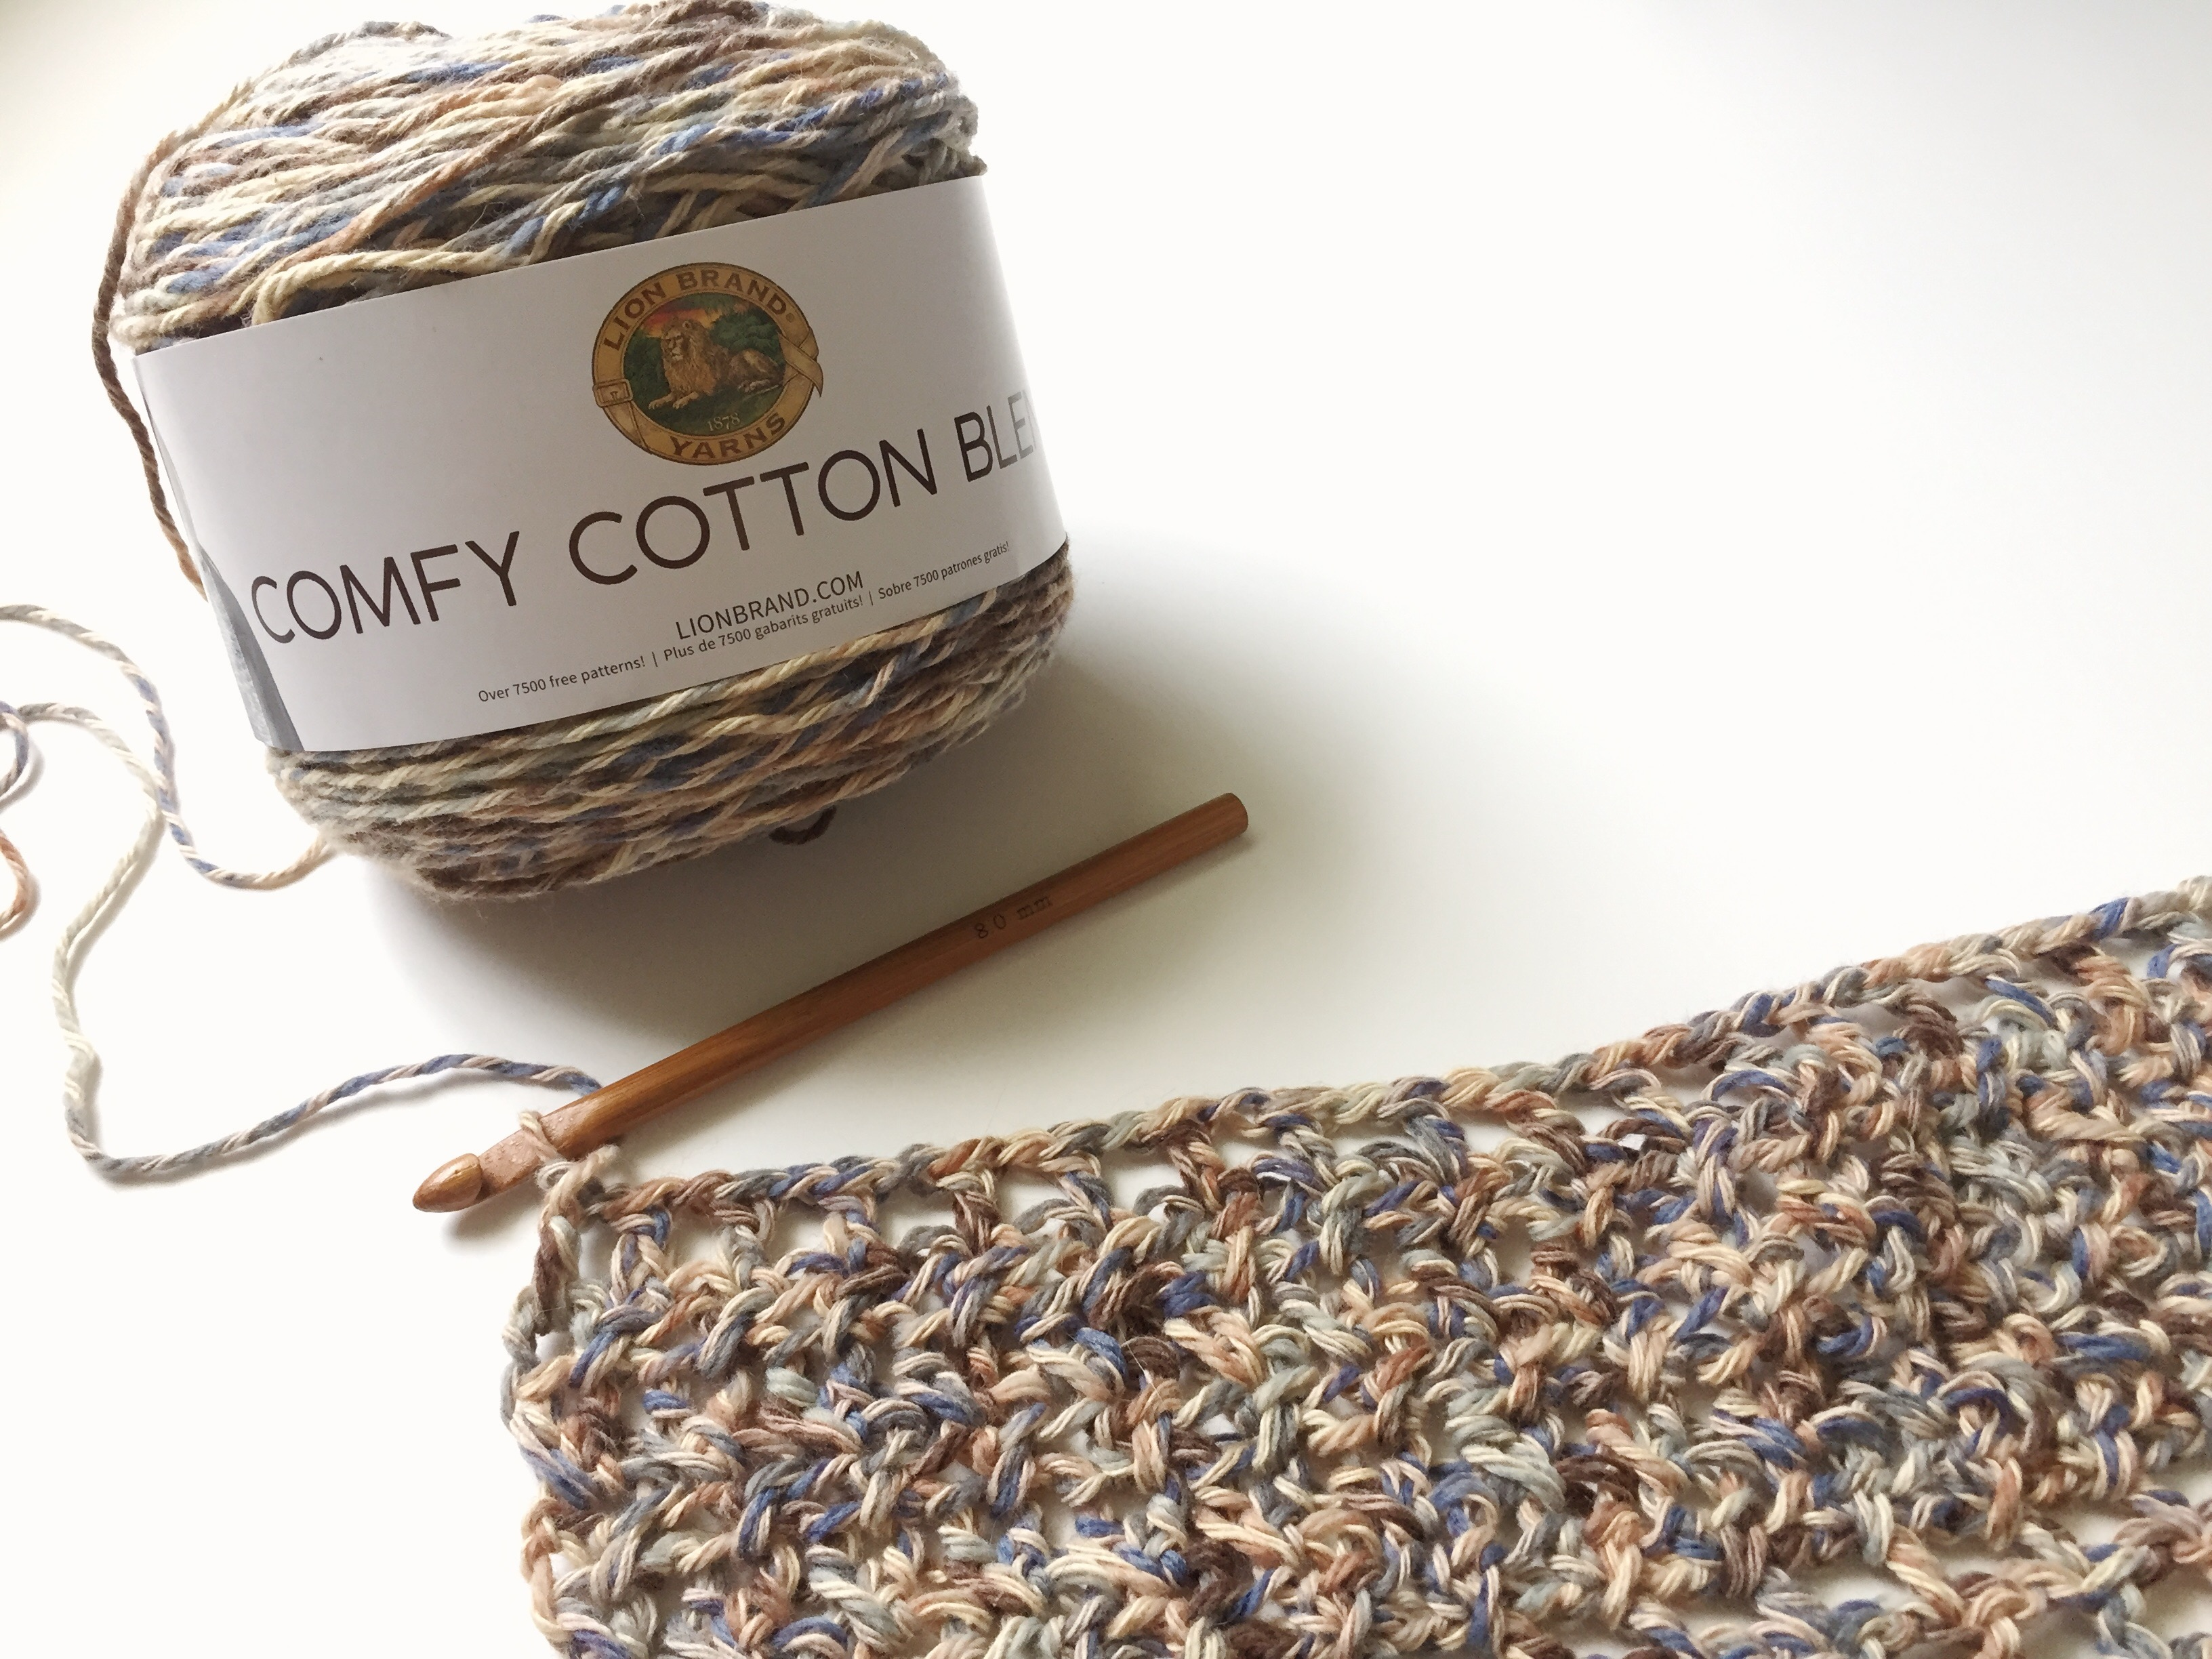 "Lion Brand Yarn's Comfy Cotton Blend in 'Driftwood"" with a crochet sample."